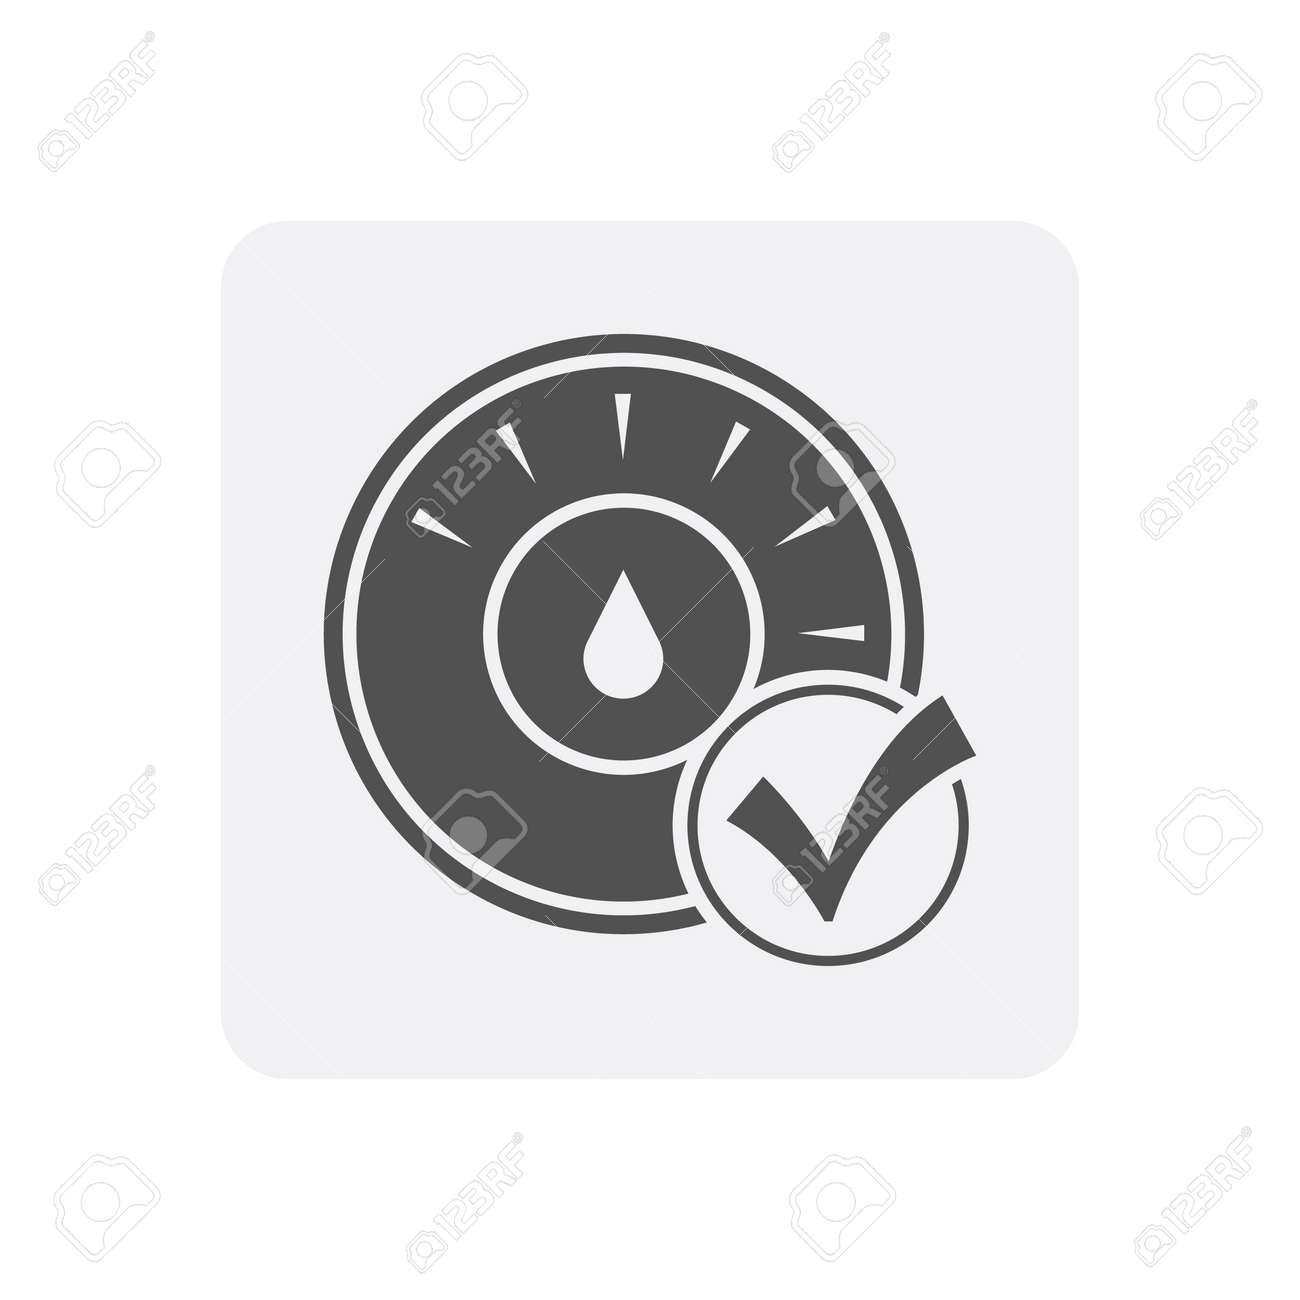 quality control at home icon with thermostat sign royalty free